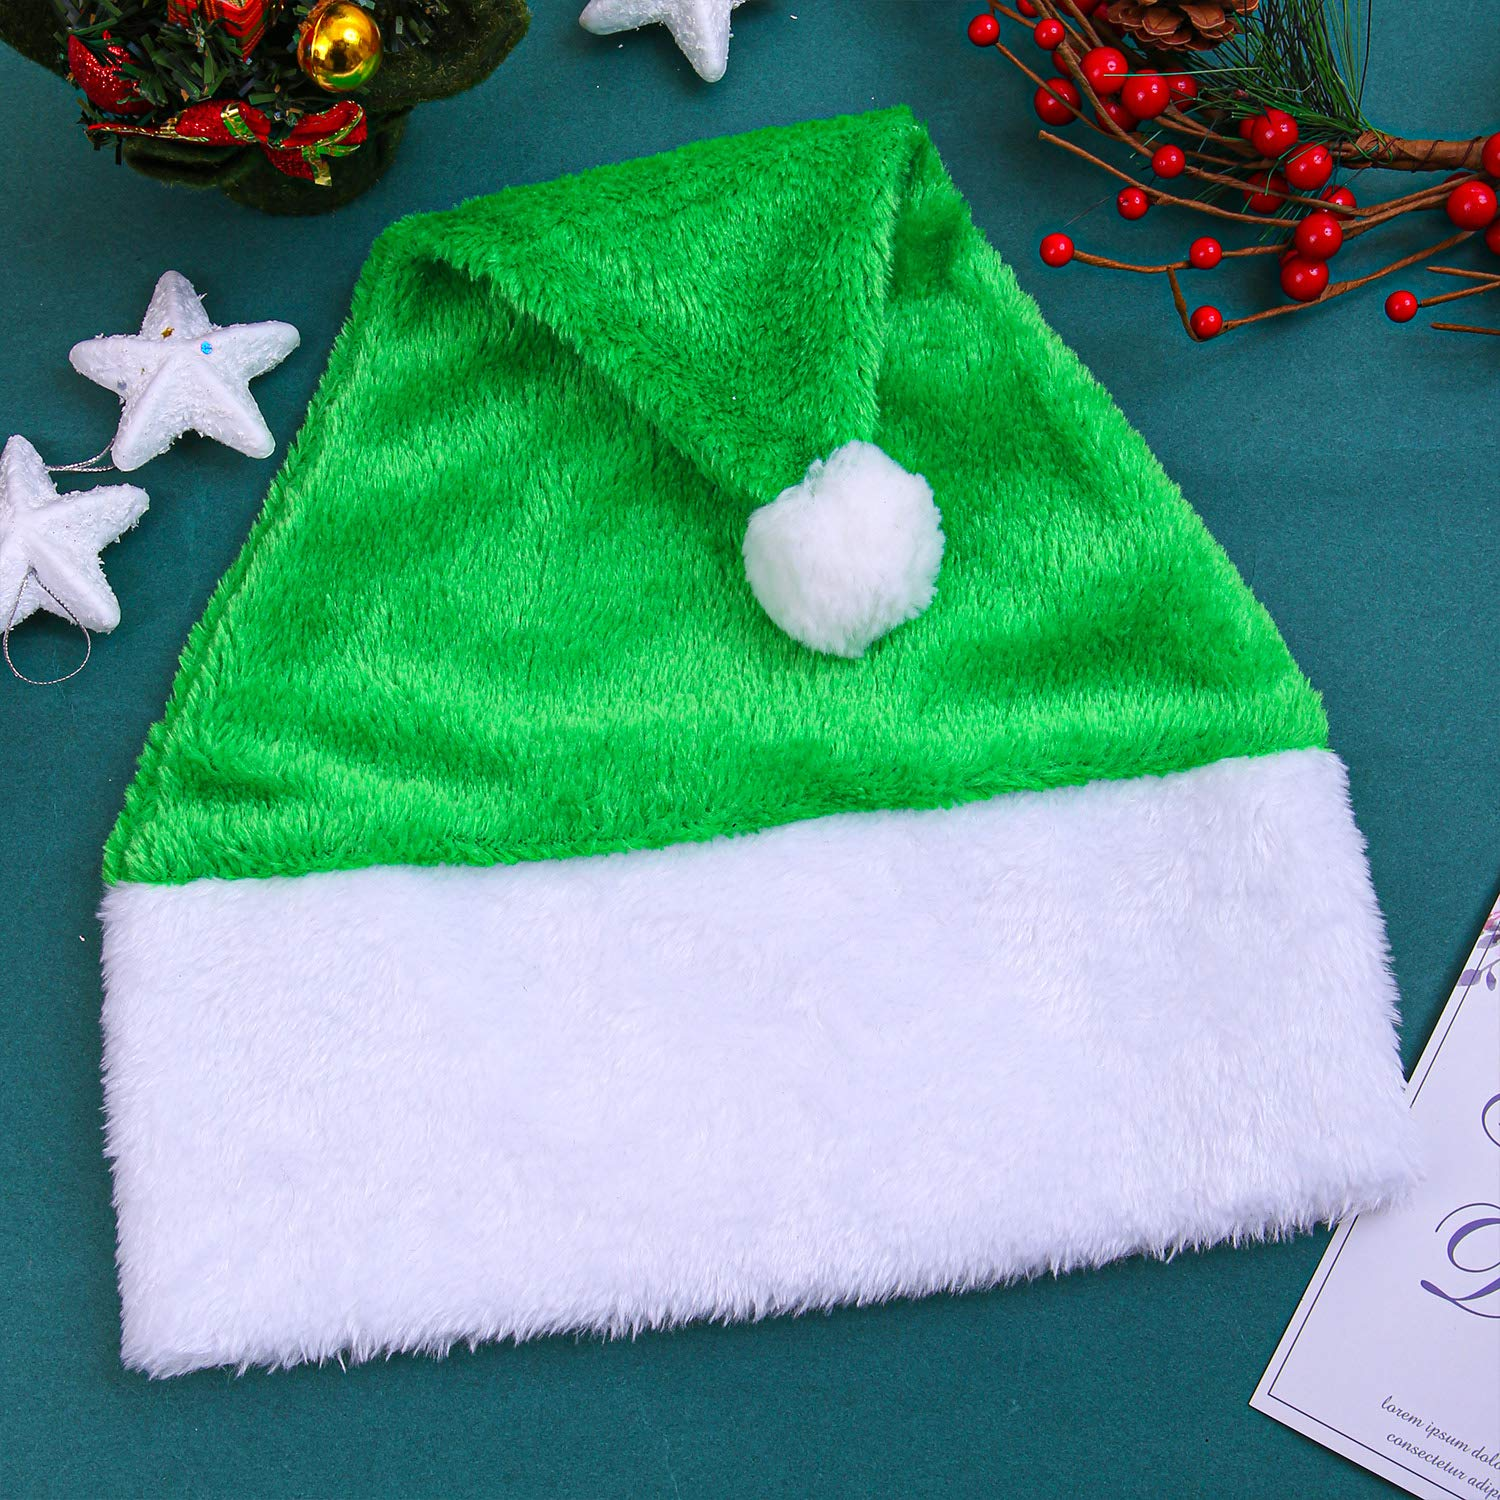 Aneco 6 Pack Christmas Santa Hats Green Hat Short Plush with White Cuffs Plush Fabric Santa Hat for Christmas Festive Holiday Party Supplies